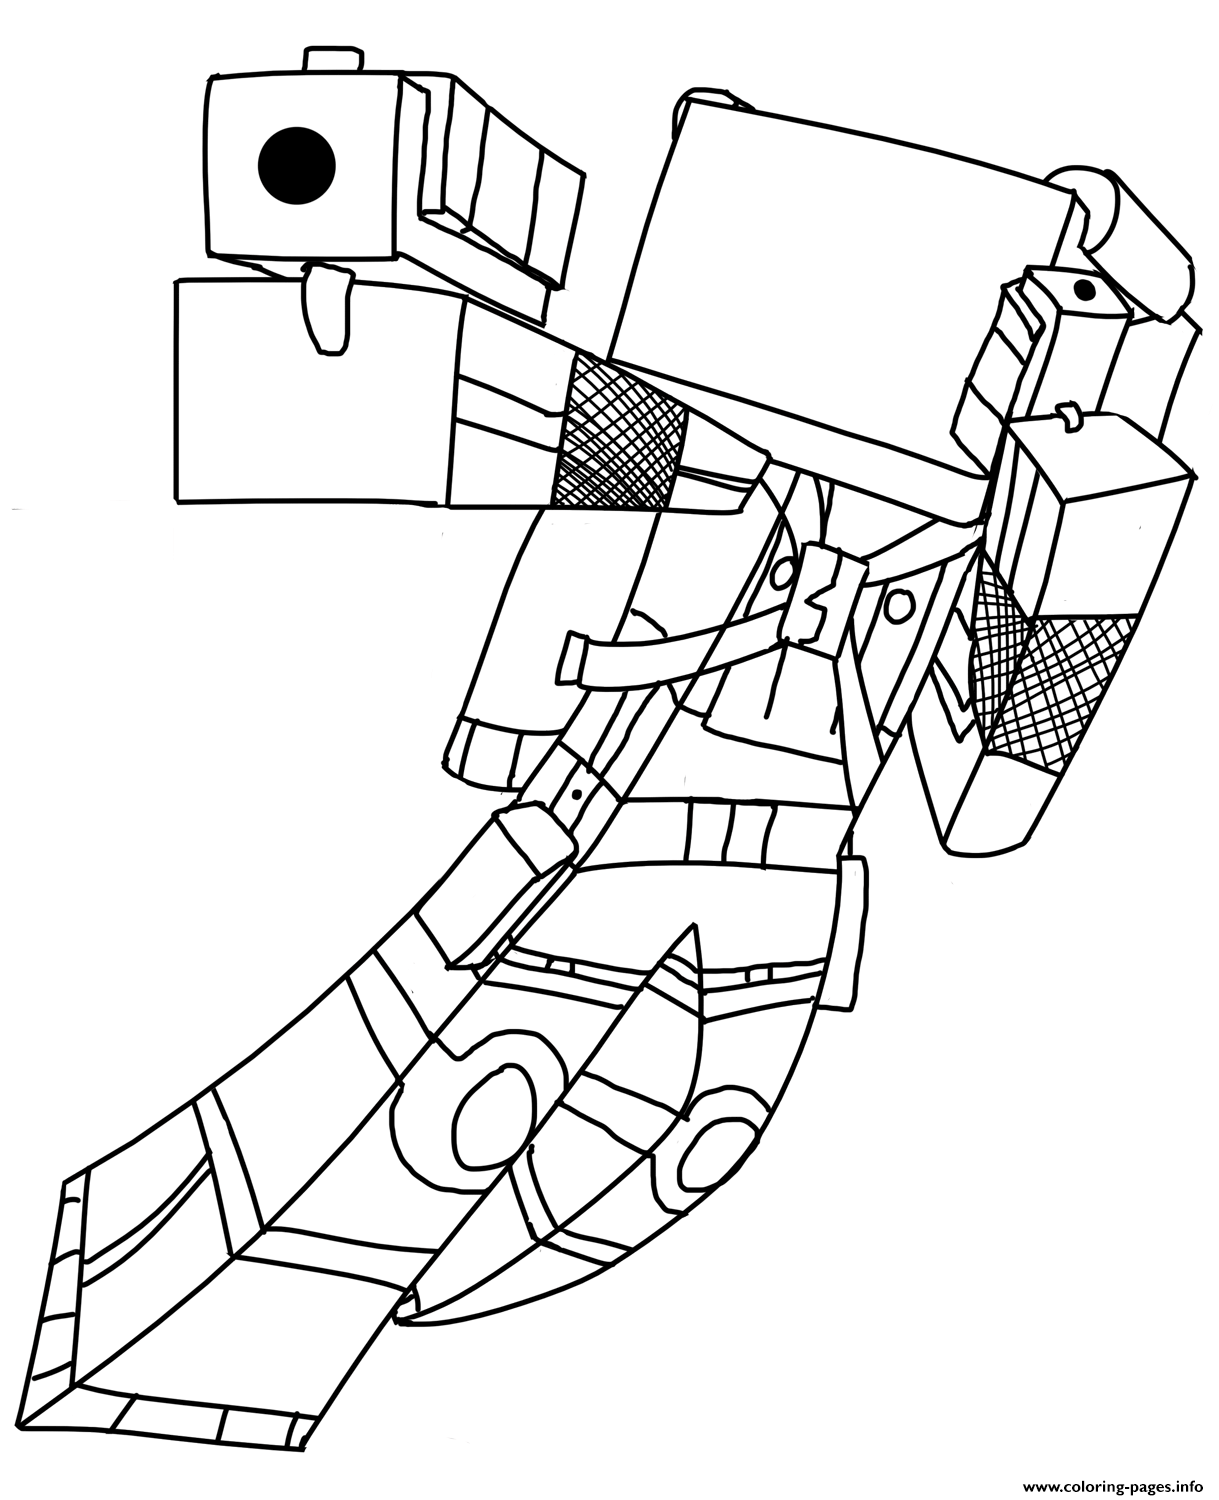 print minecraft coloring pages minecraft coloring pages print them for free 100 print pages minecraft coloring